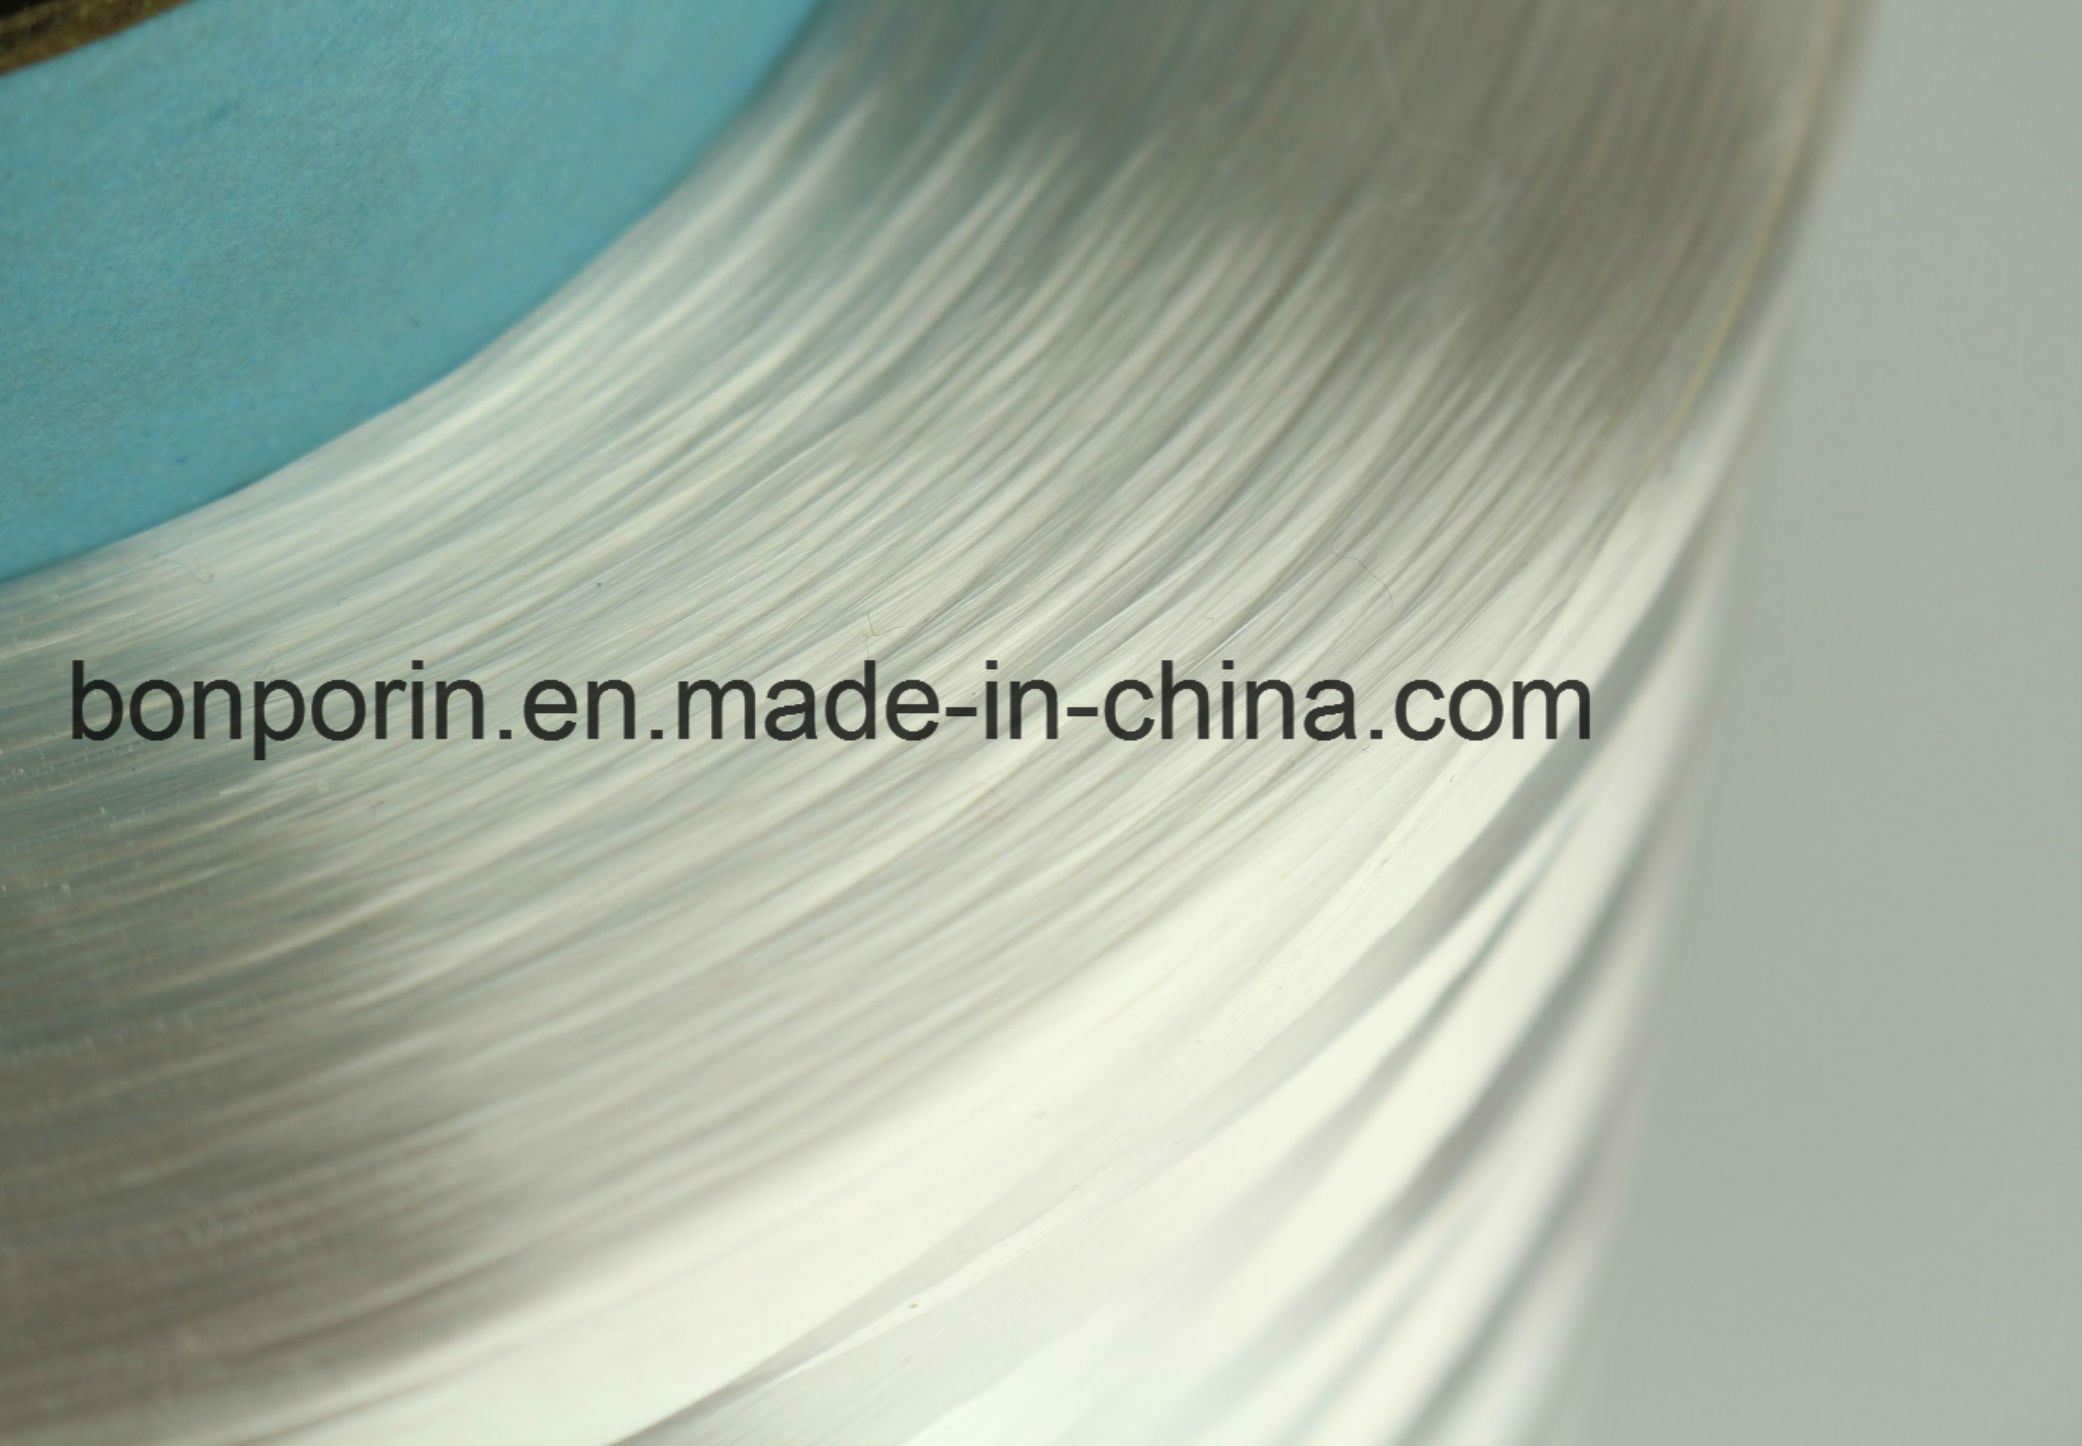 UHMWPE Fiber Hppe Yarn, Color Hppe Yarn